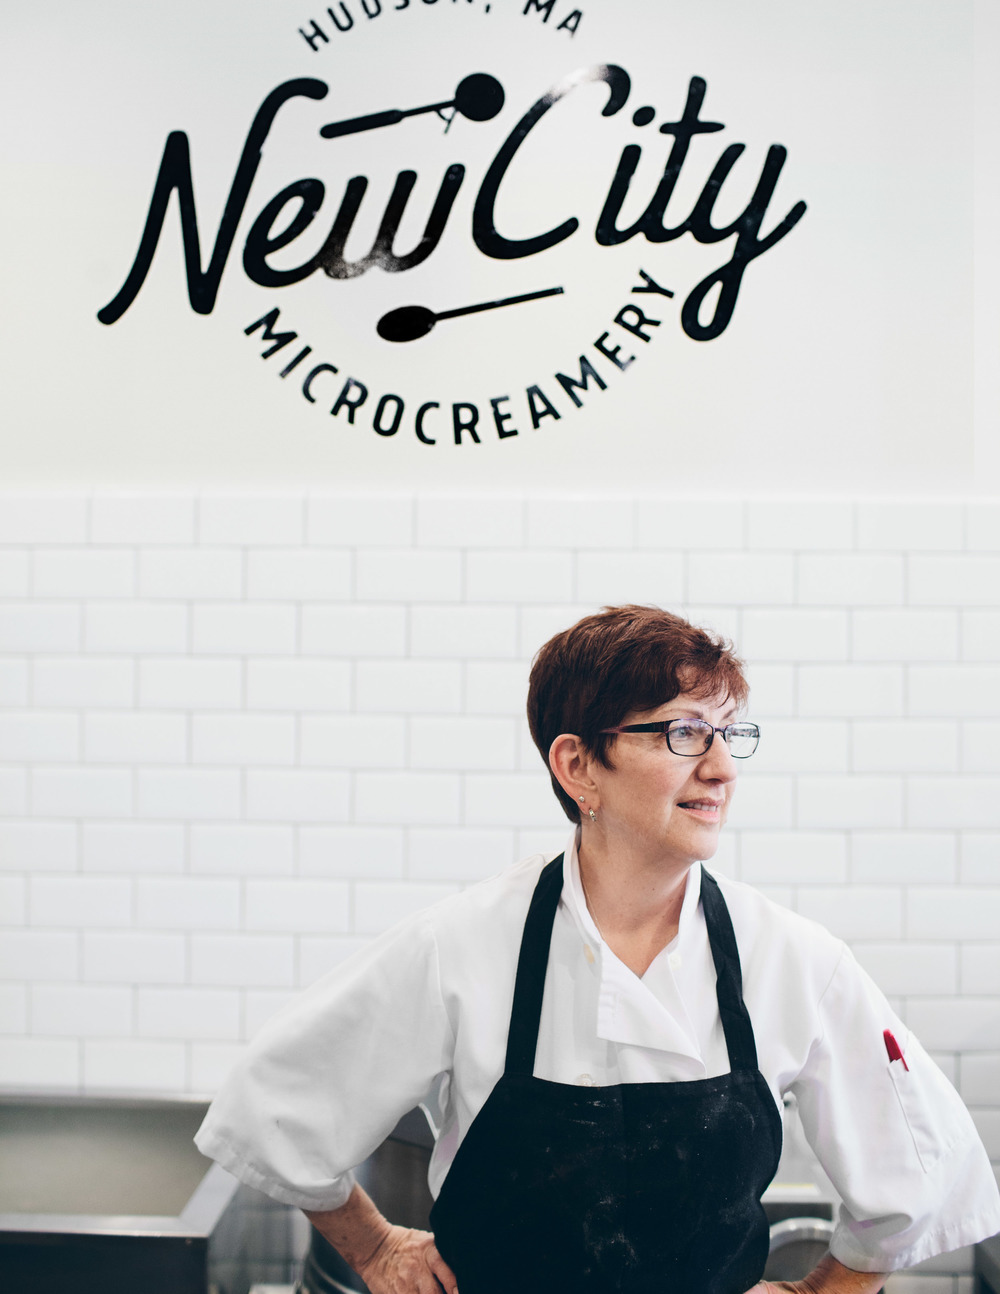 New City Microcreamery photographed by Adam DeTour